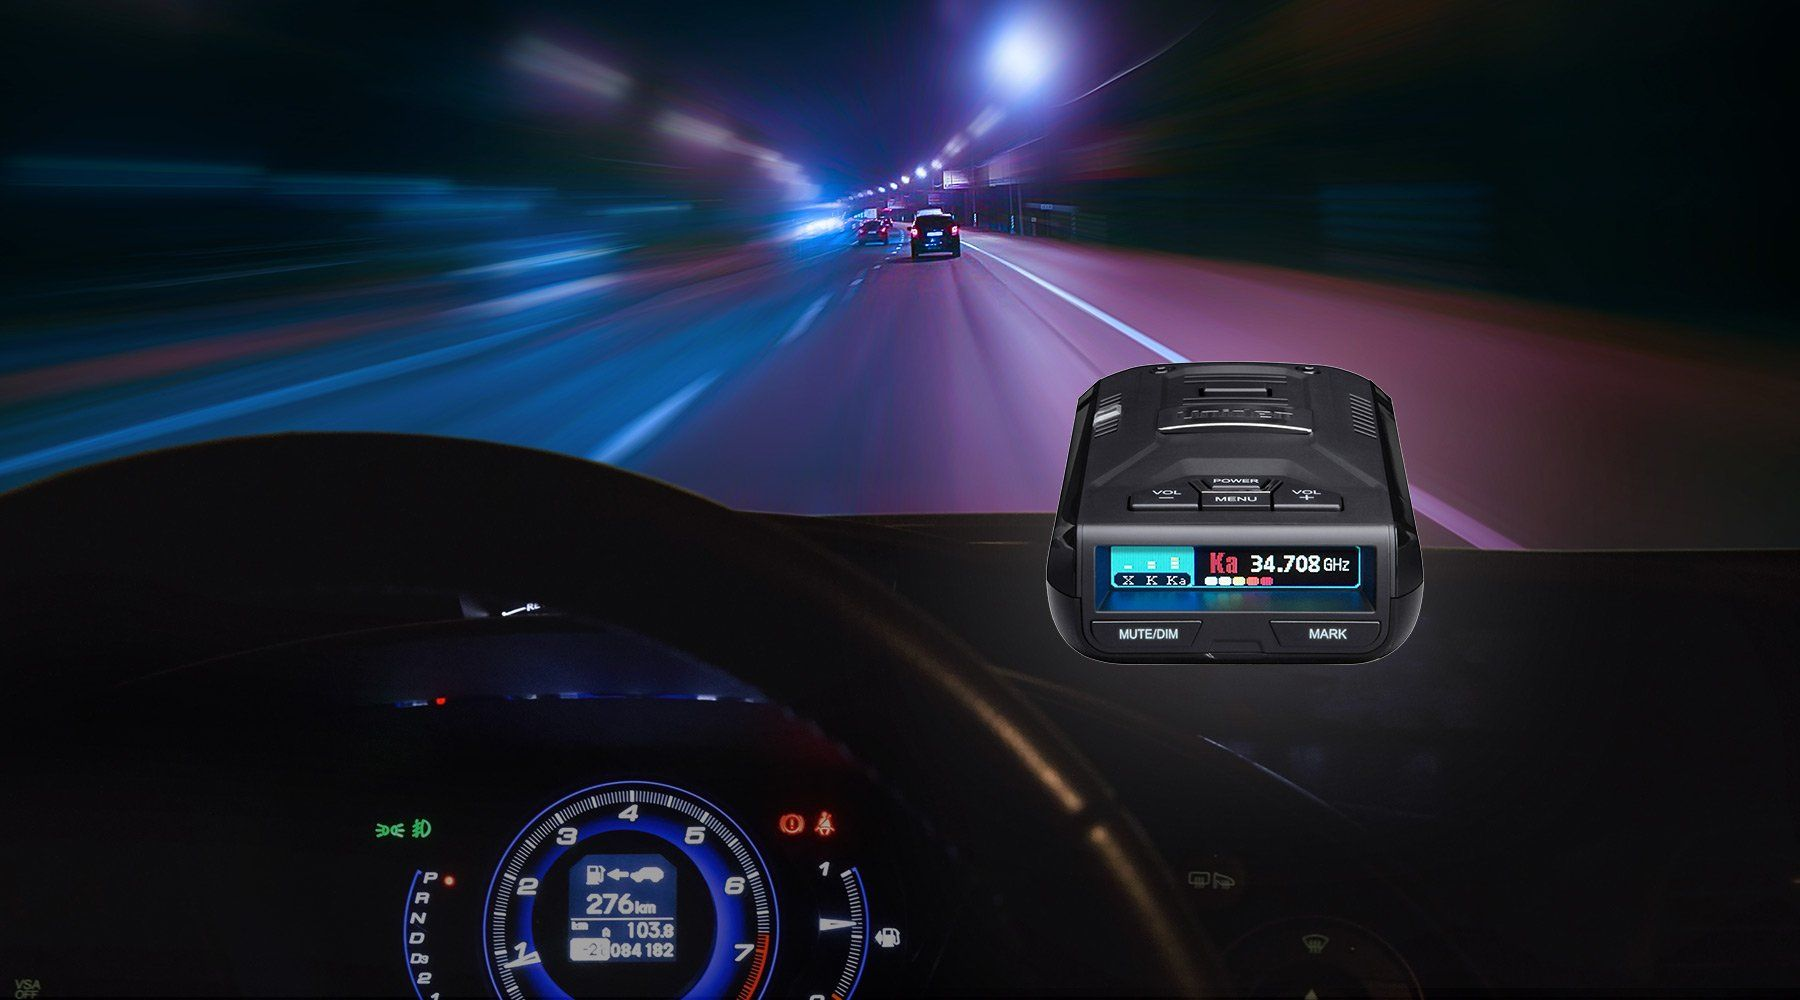 Uniden Radar Detectors Confidence On The Road